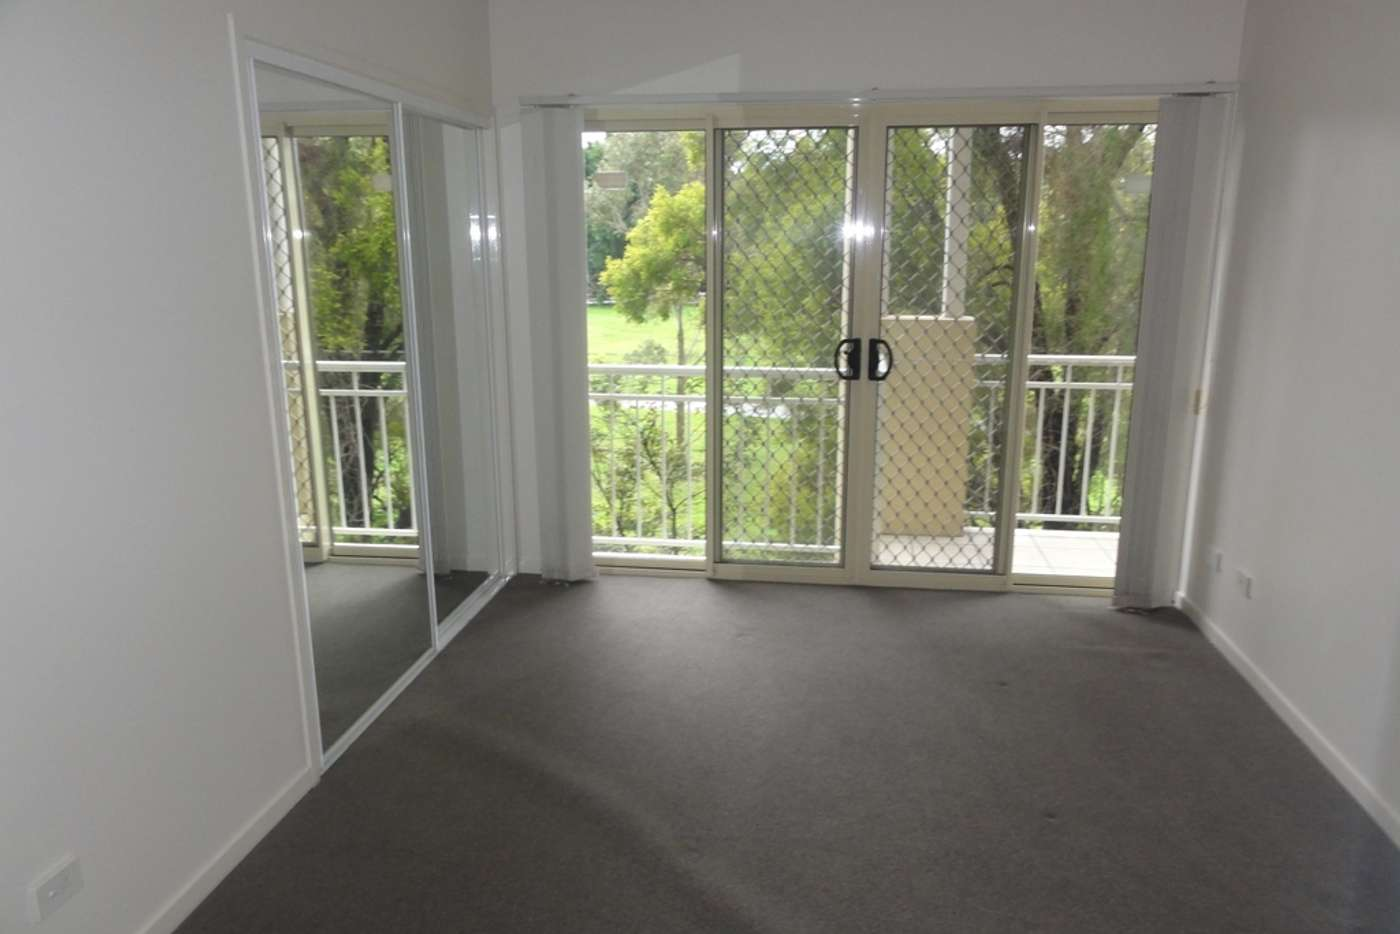 Sixth view of Homely unit listing, 4/18 Jellicoe Street, Coorparoo QLD 4151